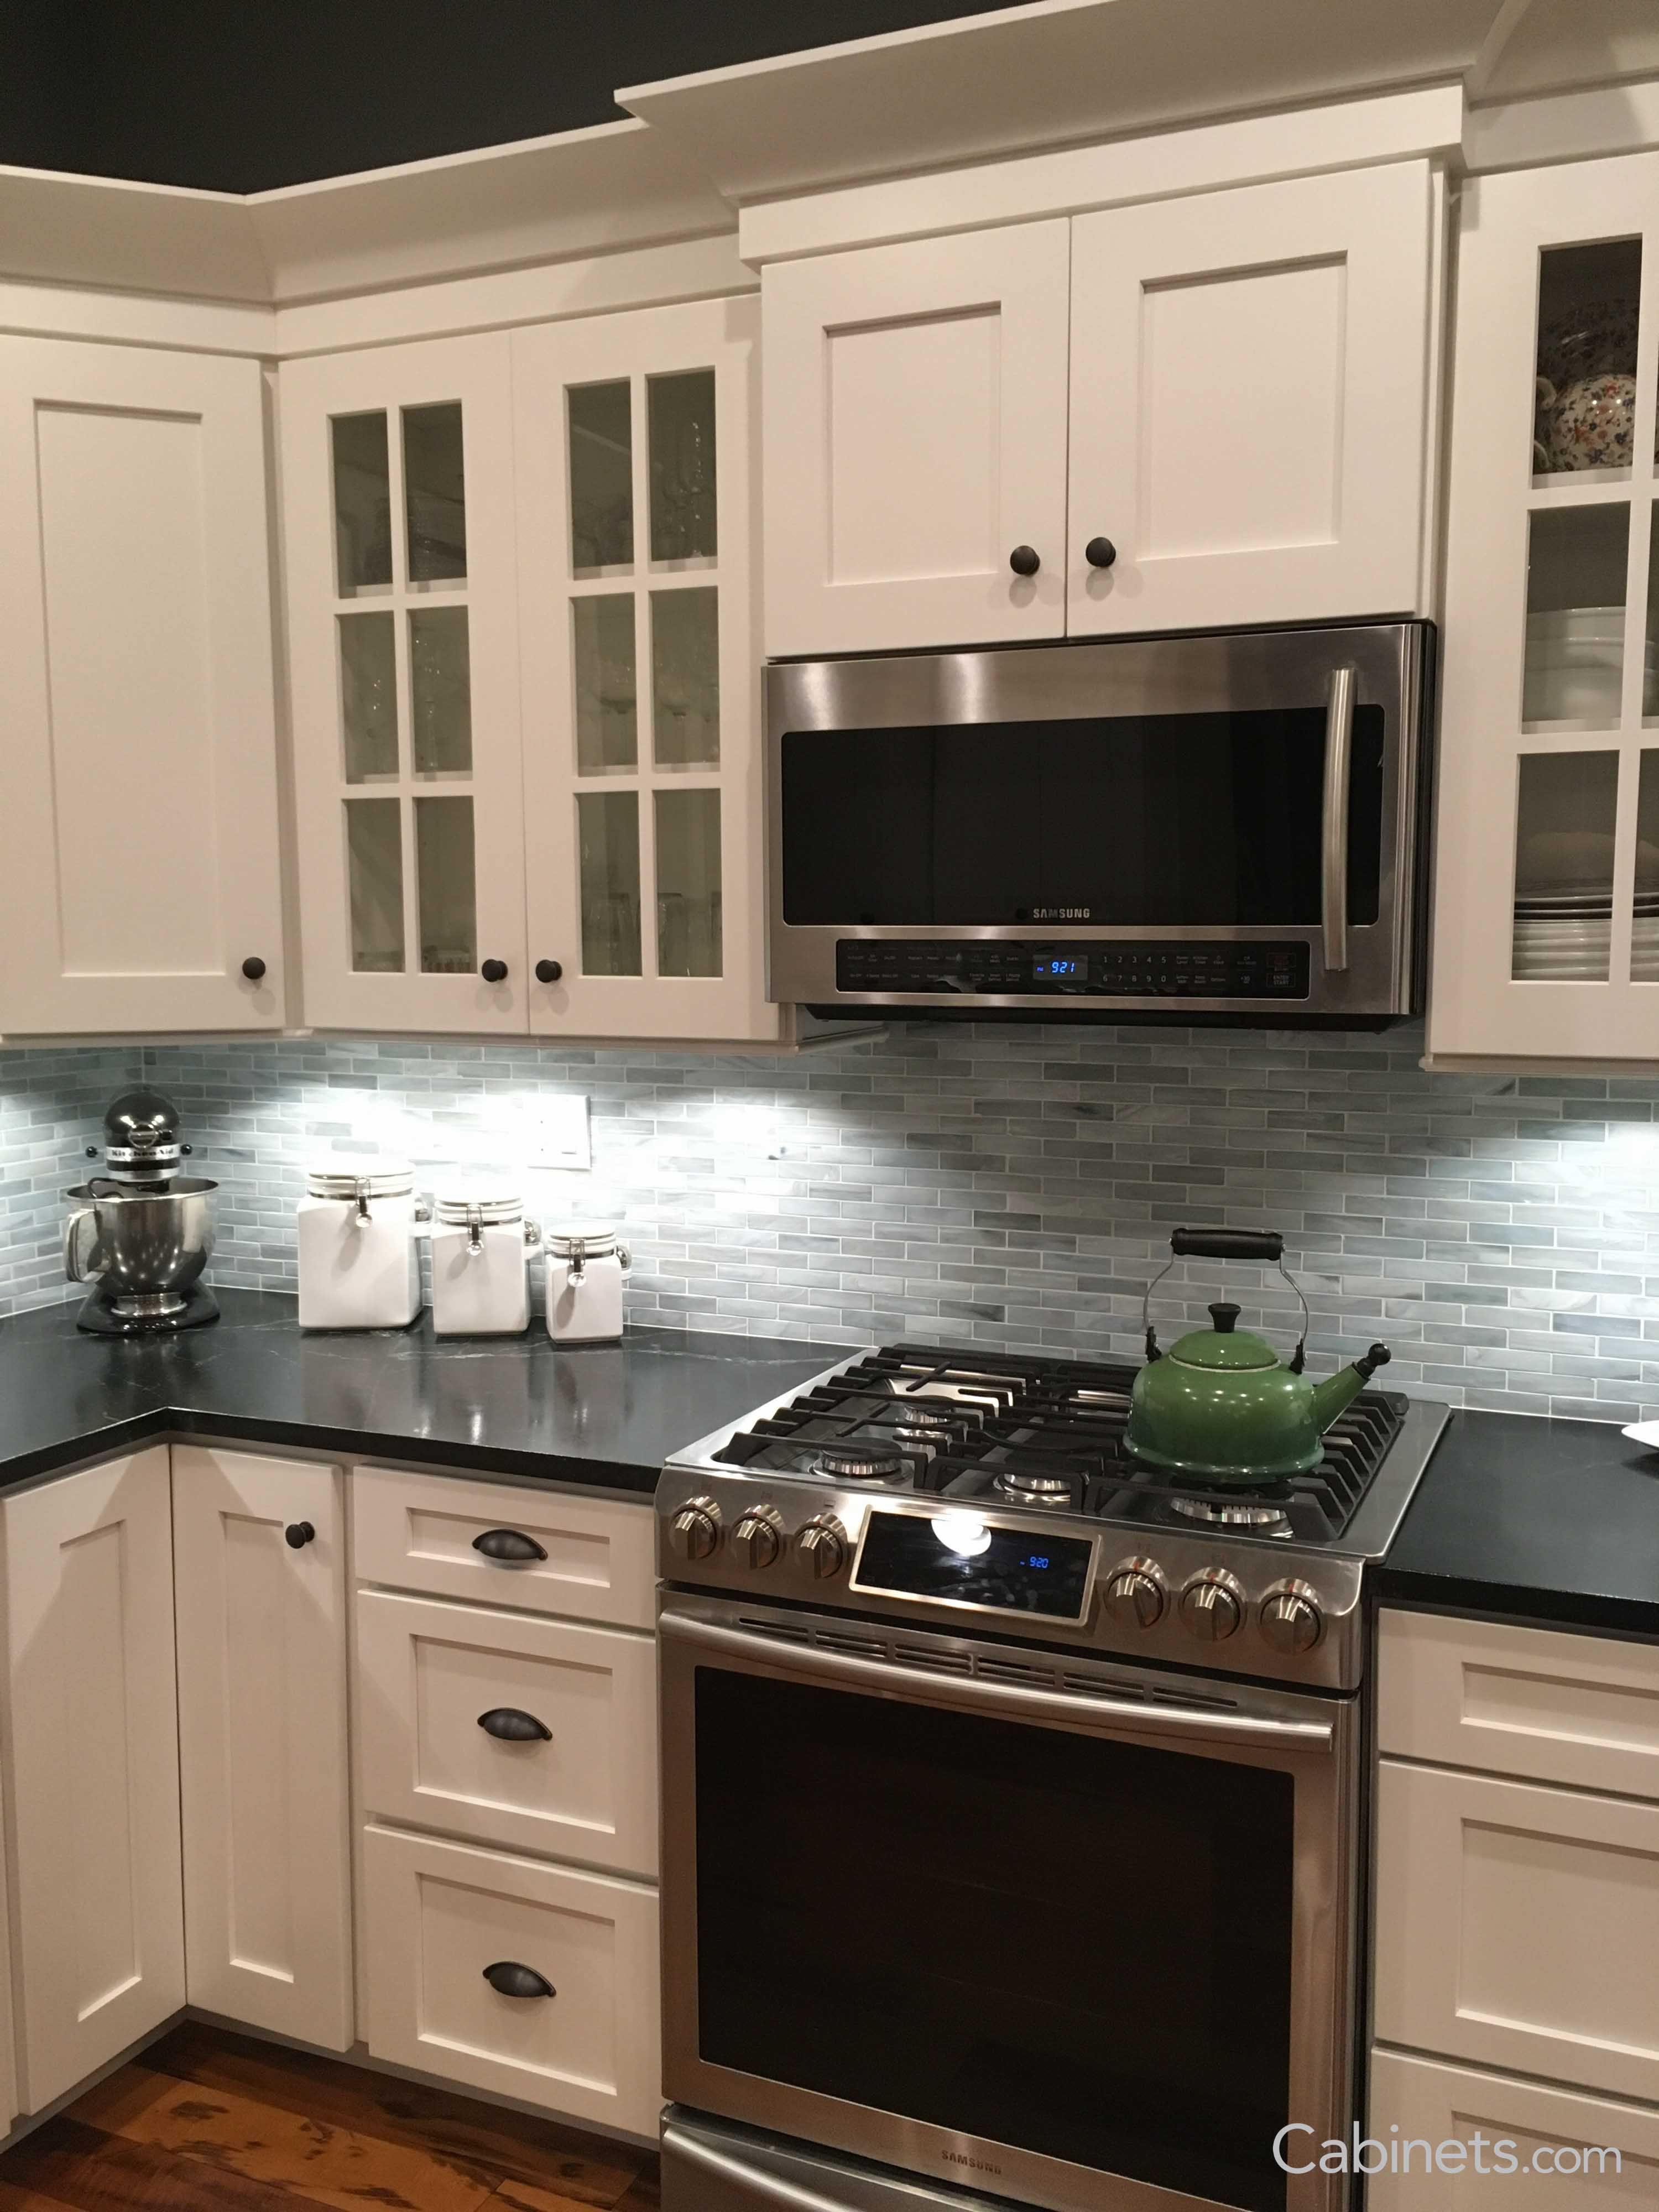 The Picture Features Shaker II Maple Bright White Cabinets. Shaker Kitchen  Cabinets Are A Timeless Choice For Your Home!